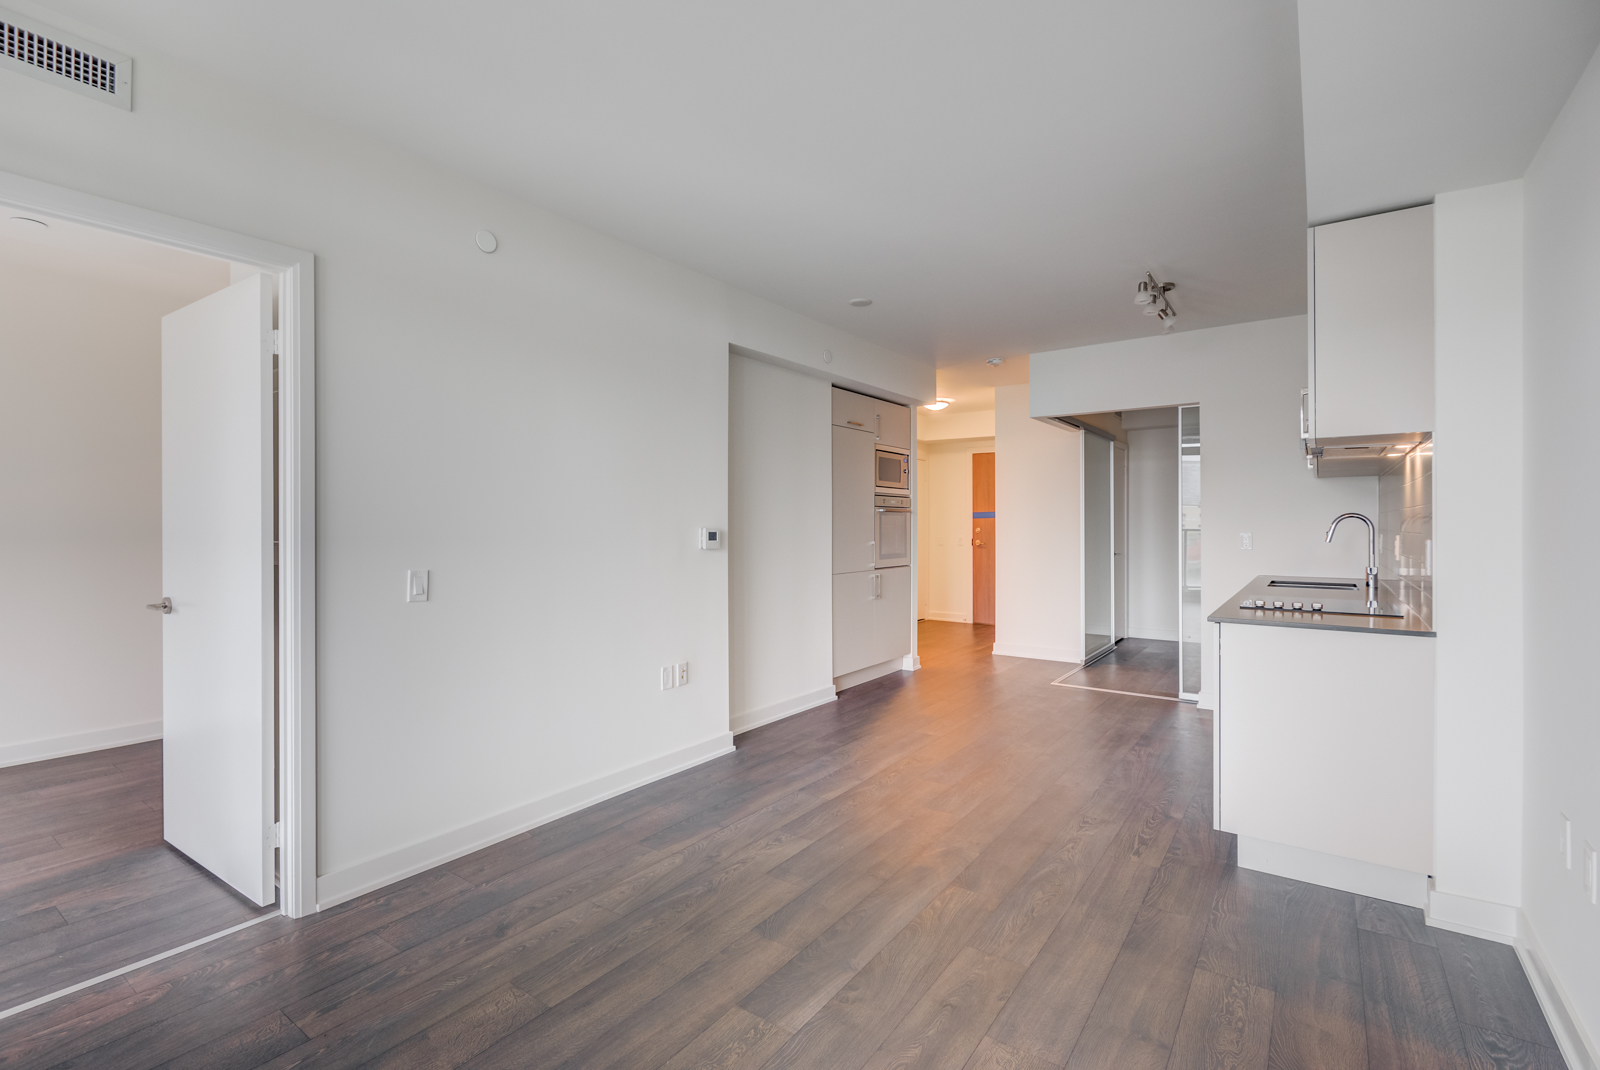 Spacious open-concept living and dining rooms with kitchen.